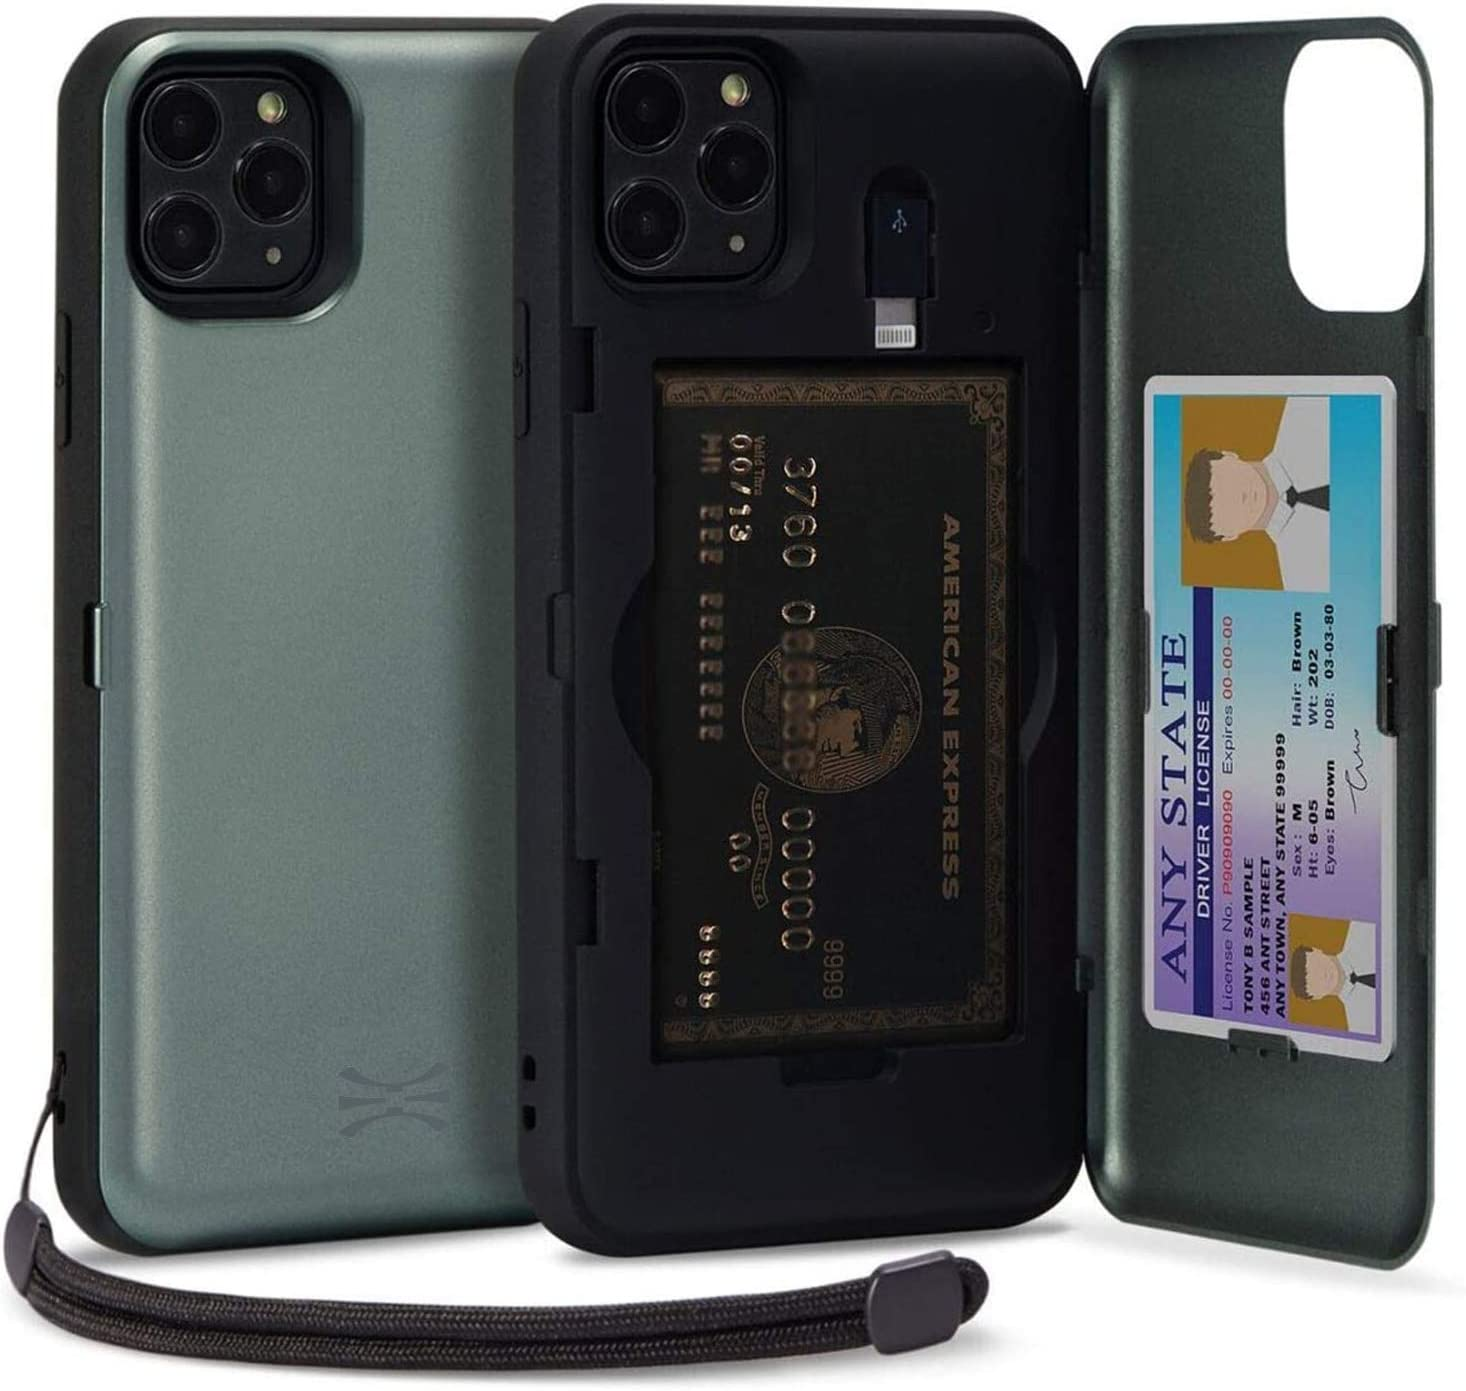 TORU CX PRO Compatible with iPhone 11 Pro Wallet Case - Protective Dual Layer with Hidden Card Holder, ID Slot Hard Cover, Strap, Mirror & Lightning Adapter - Midnight Green